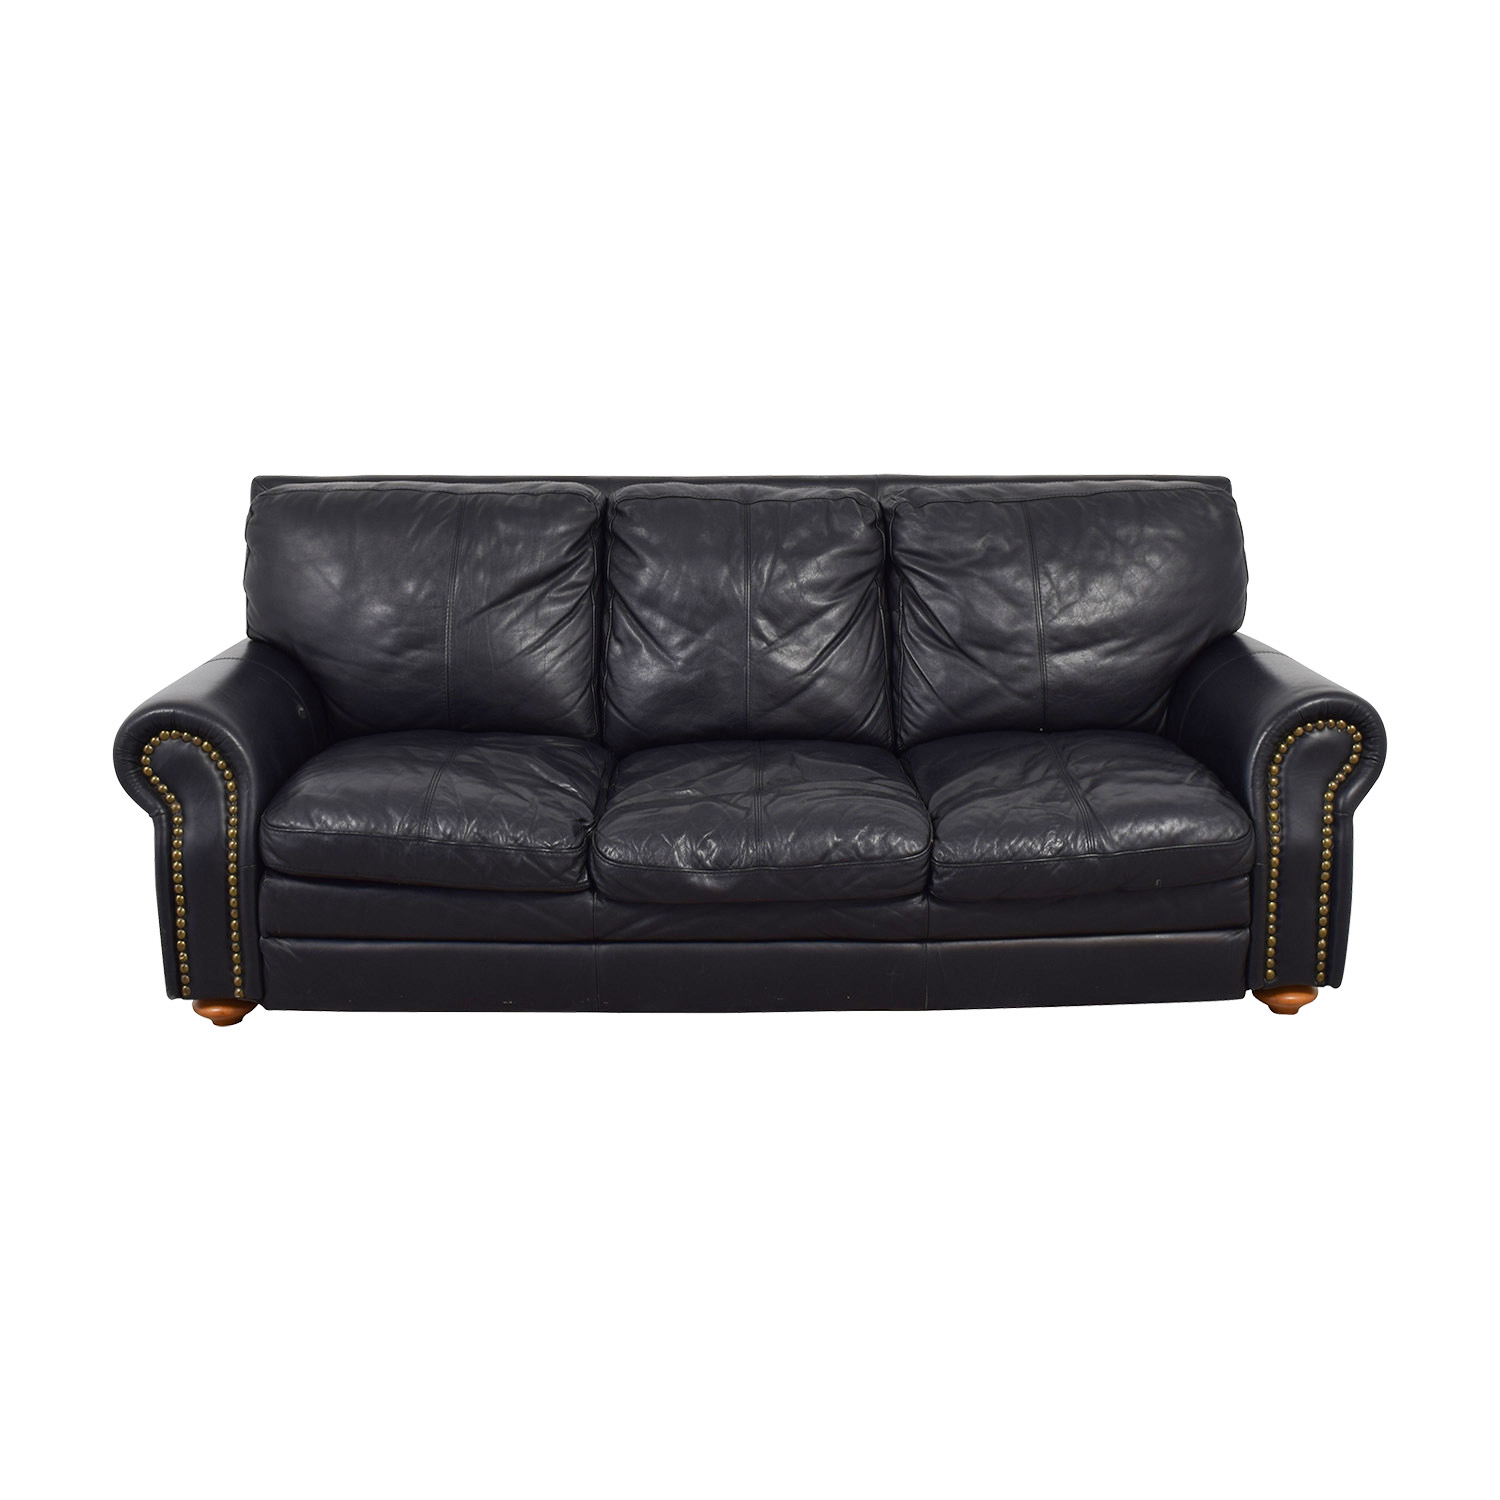 black leather sofa with nailheads outdoor furniture table sofas used for sale